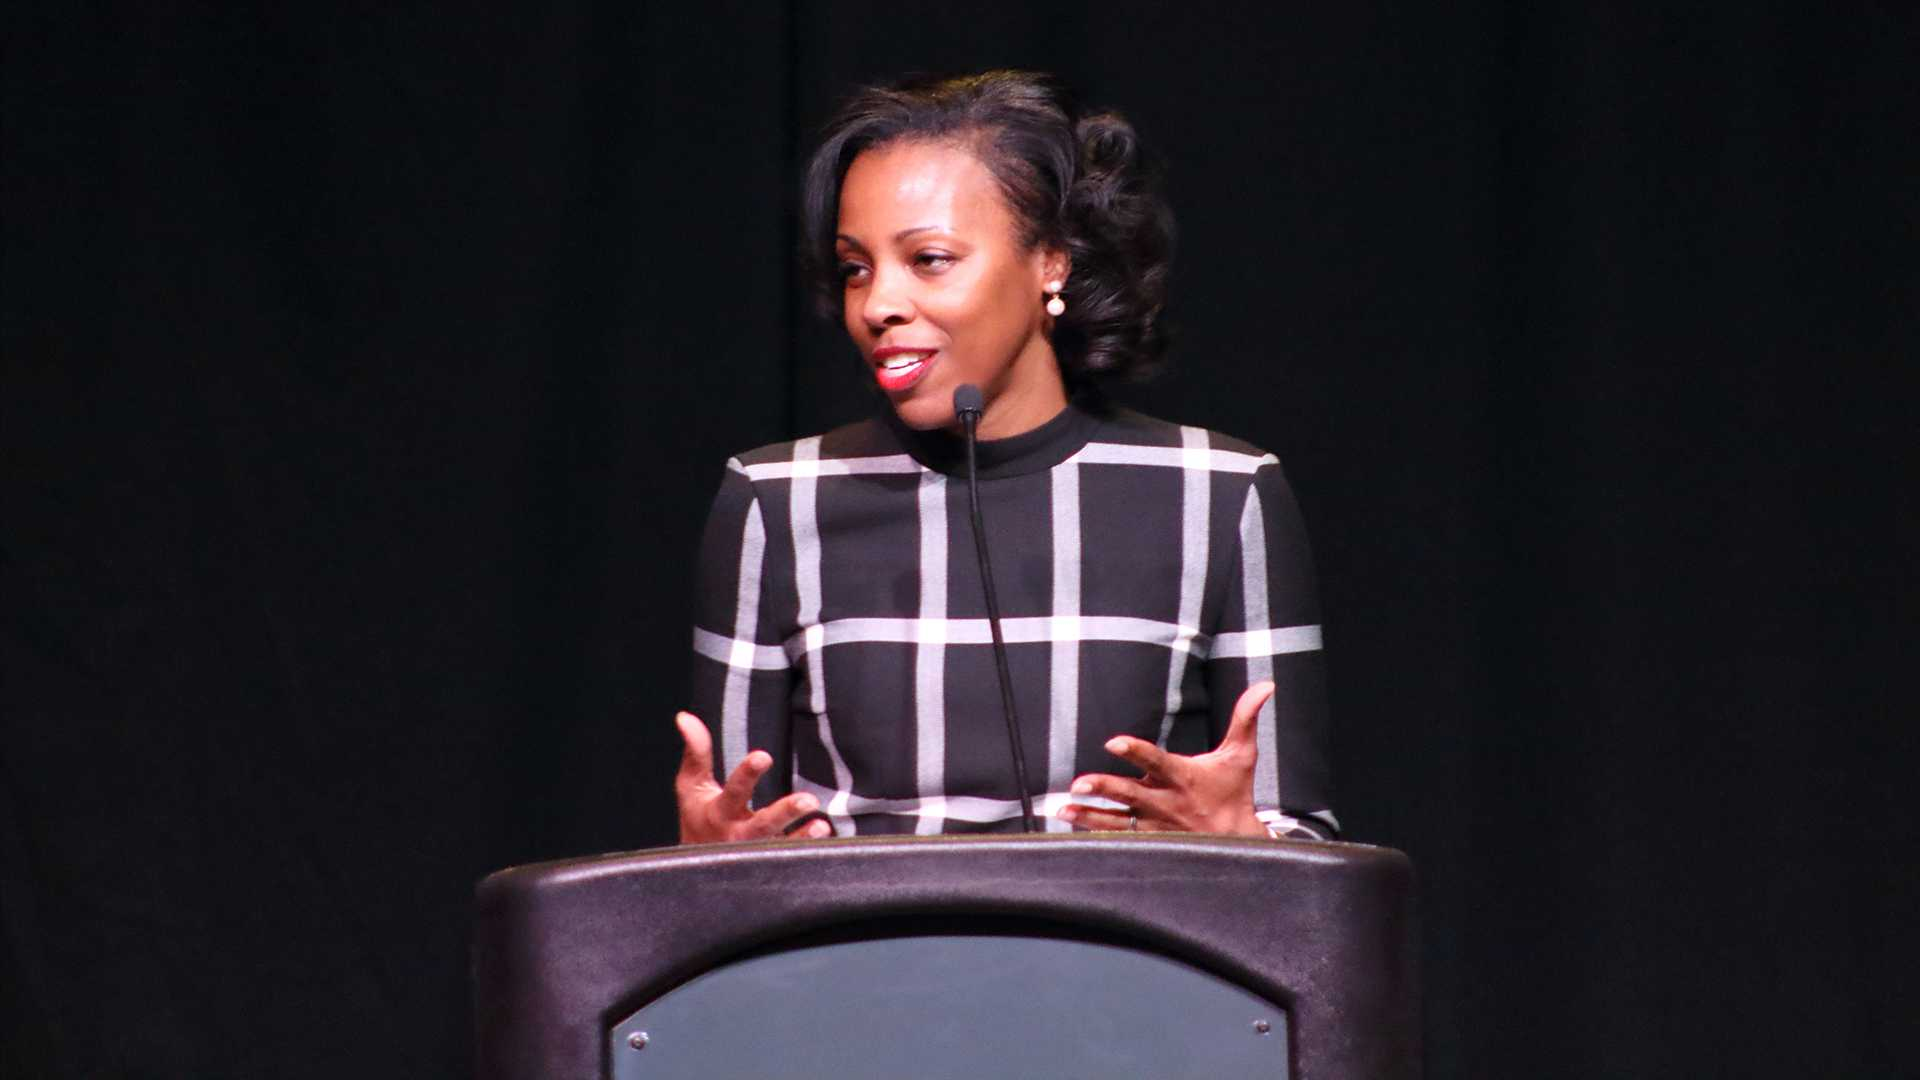 Interim Chief Diversity Officer Lena Hill speaks in the IMU on Wednesday, Jan. 17, 2018. The presentation gave updates on diversity and statistics about underrepresented UI students, faculty, and staff. (Ashley Morris/The Daily Iowan)